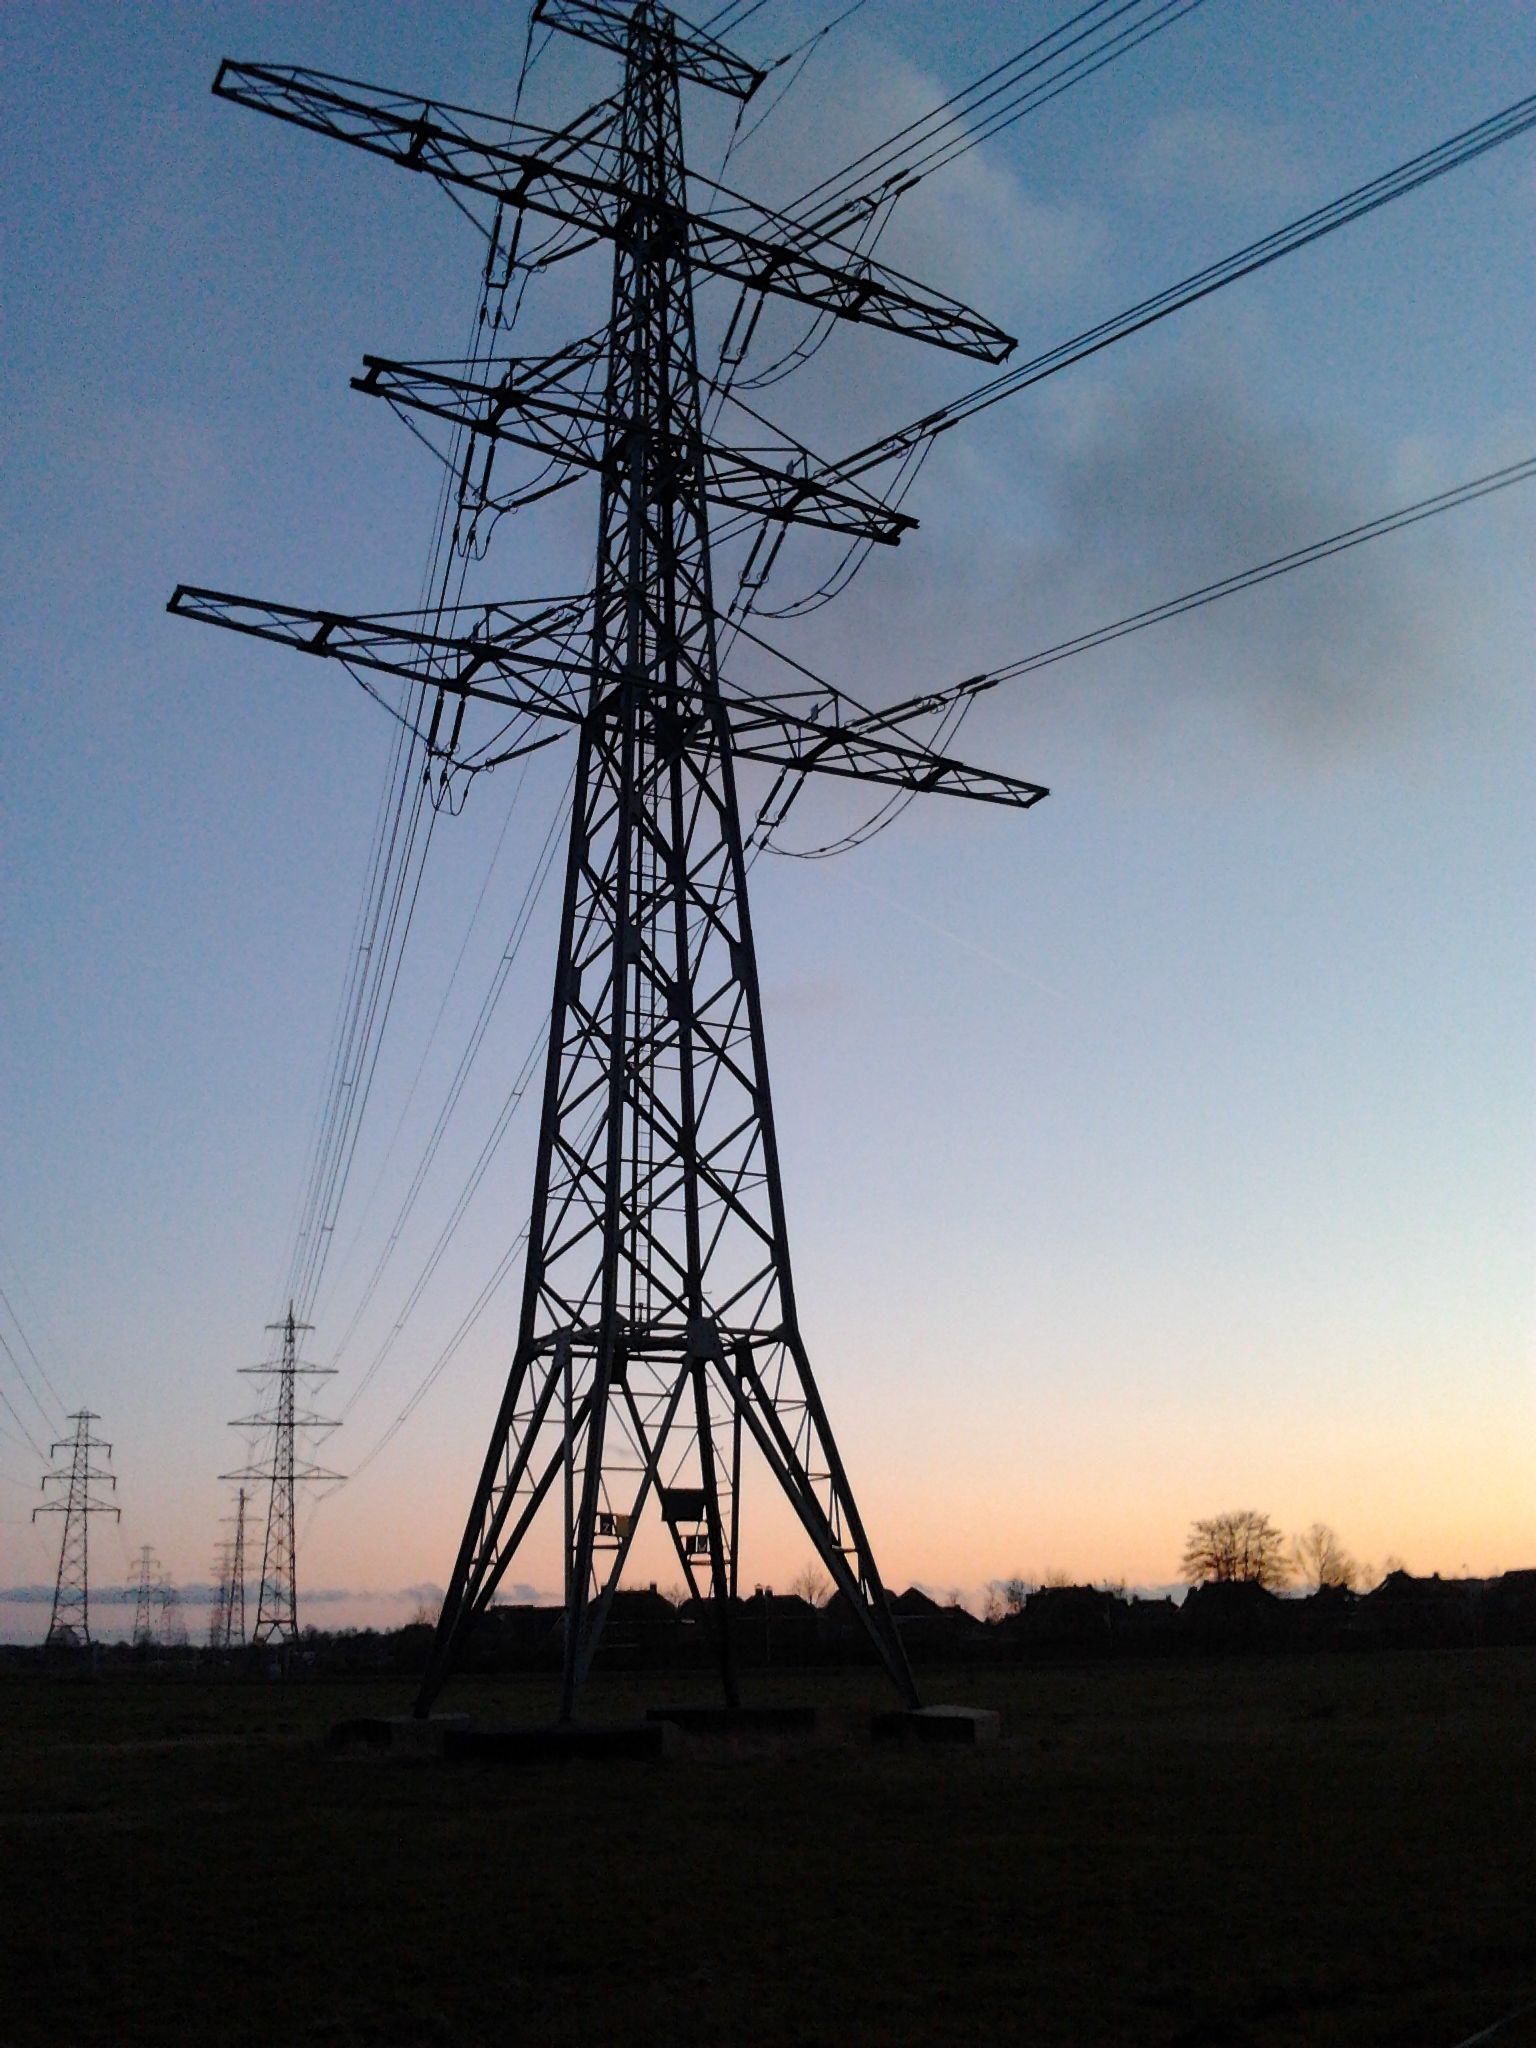 Transmission tower near Kloosterveen, Drenthe